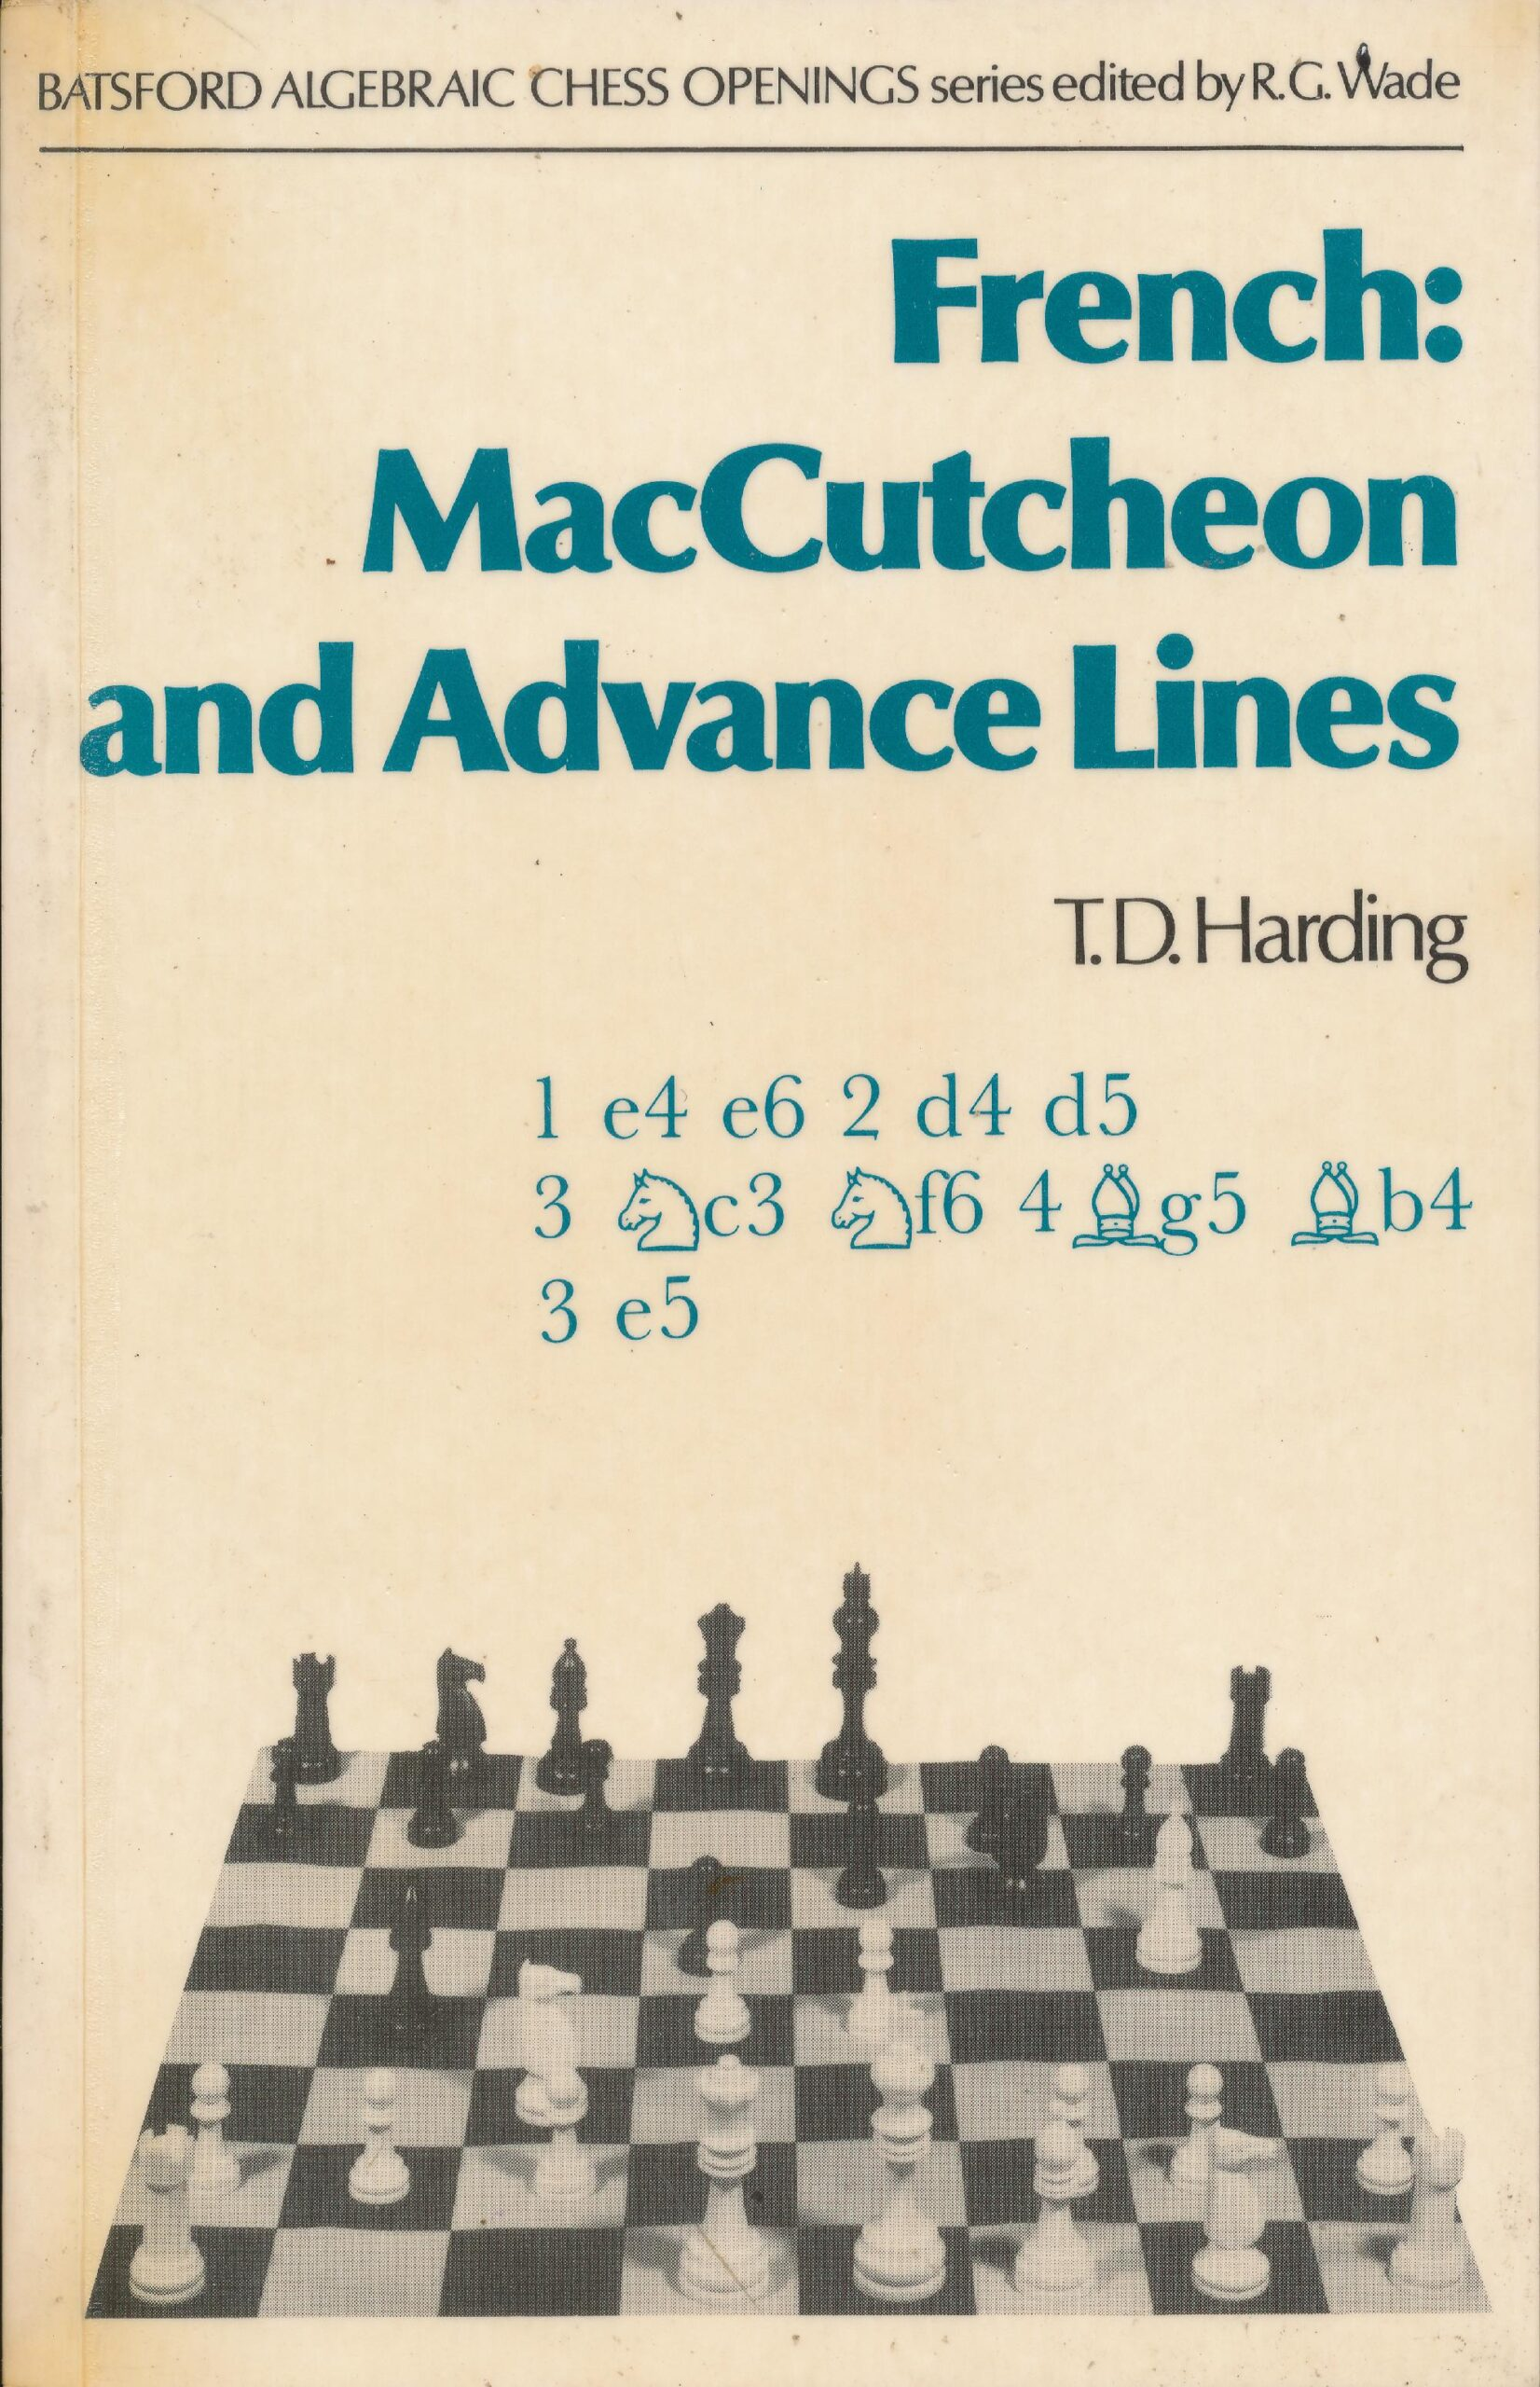 French: MacCutcheon and Advance Lines, Batsford, 1979